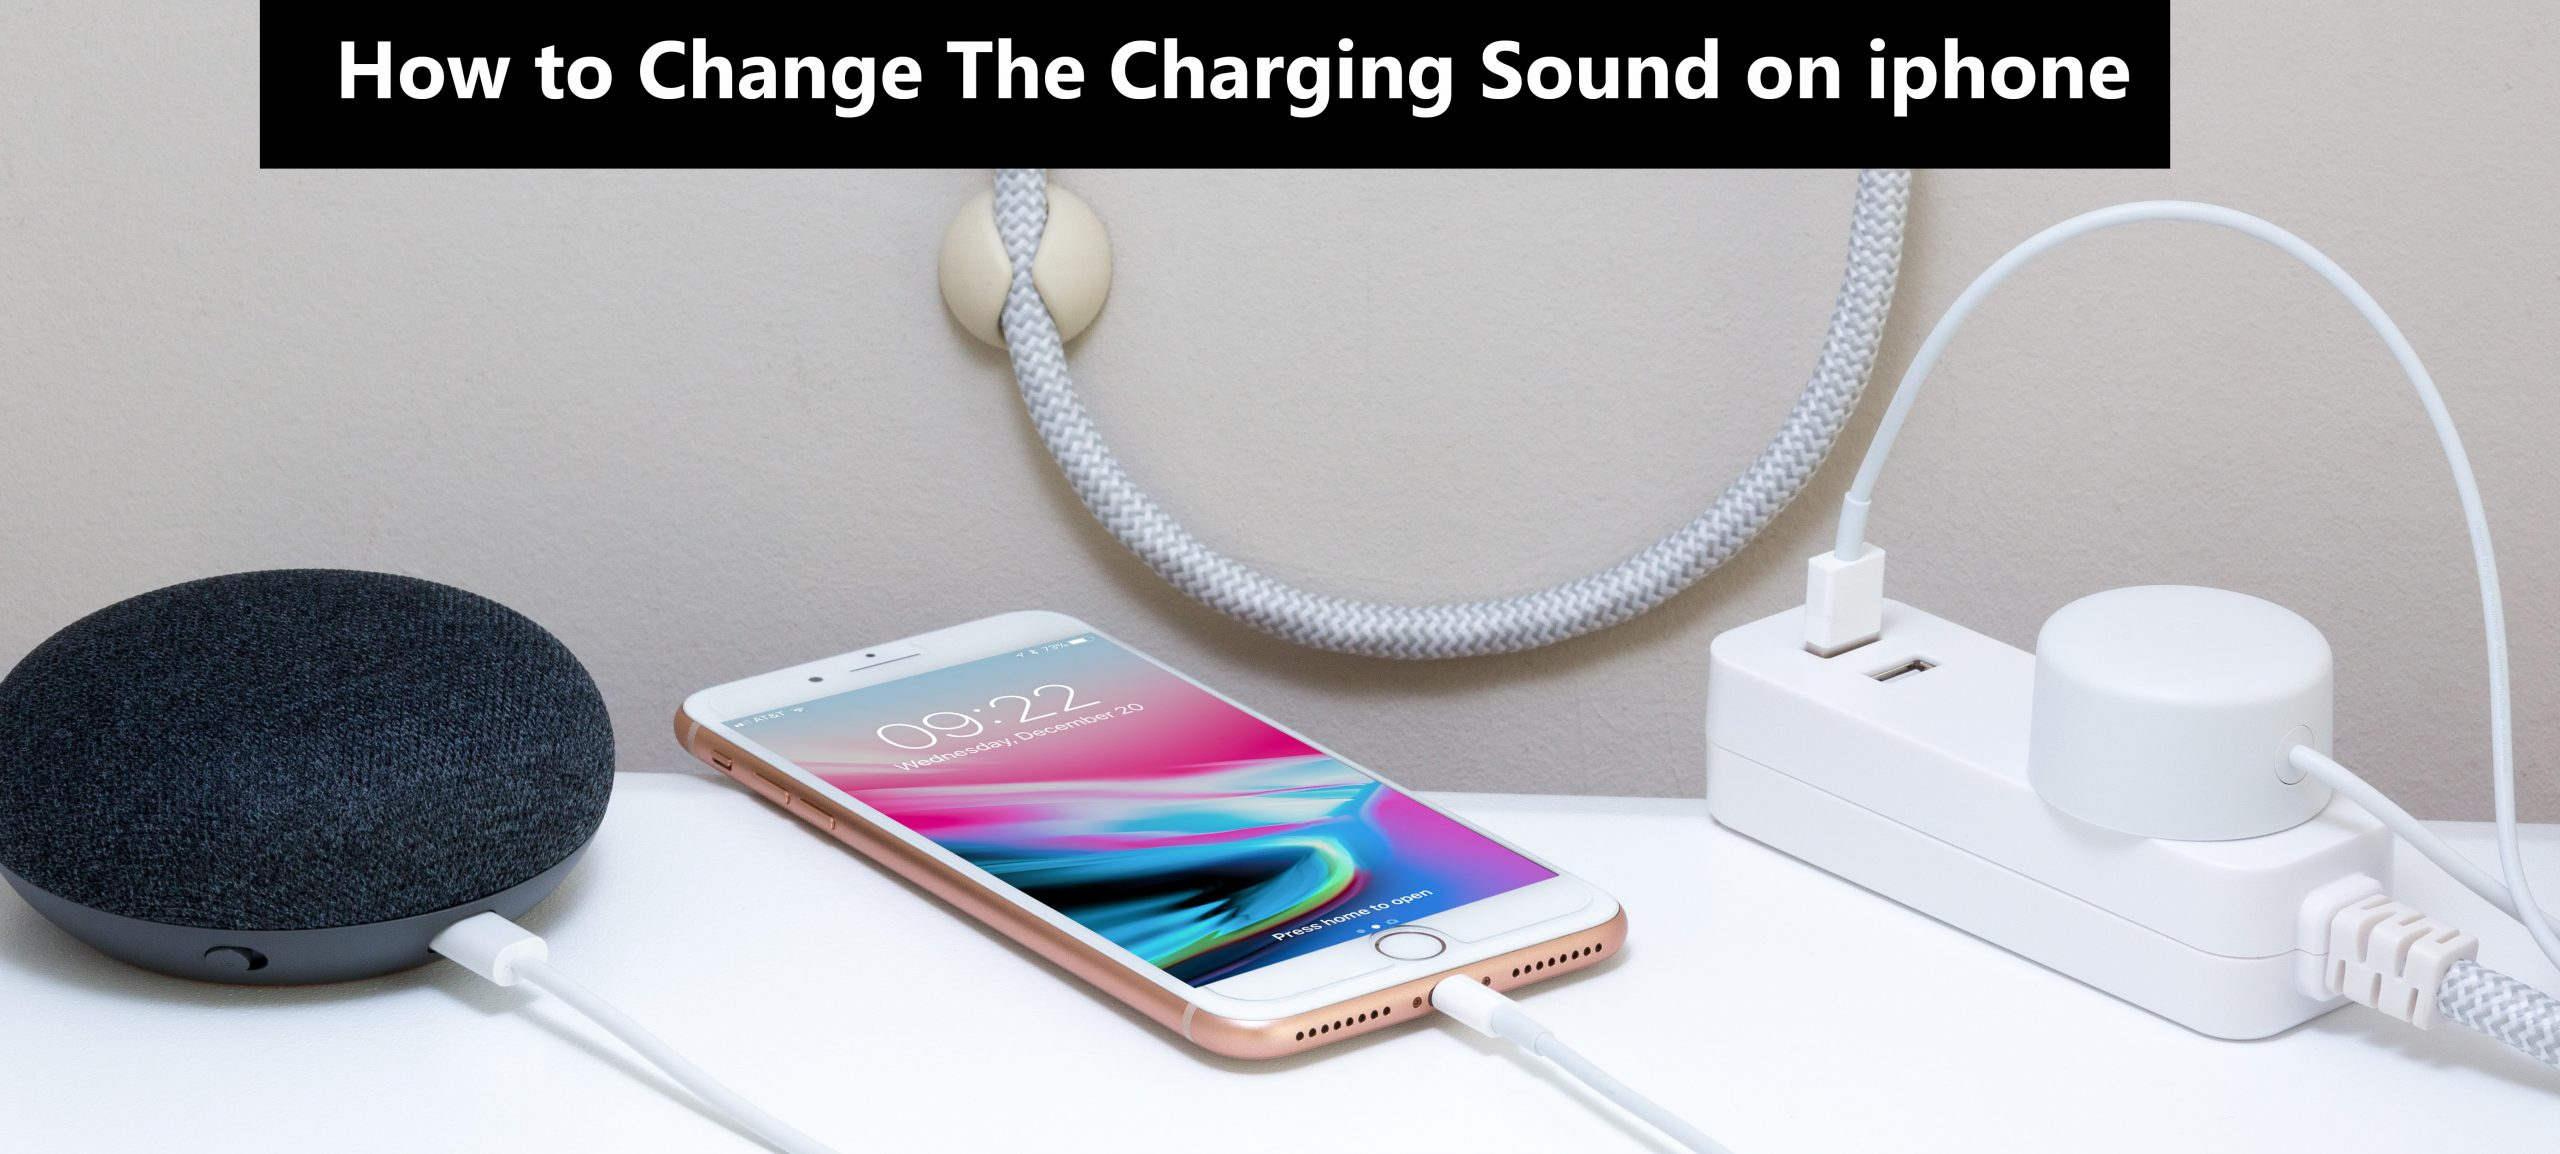 How to change the Charging Sound on iPhone